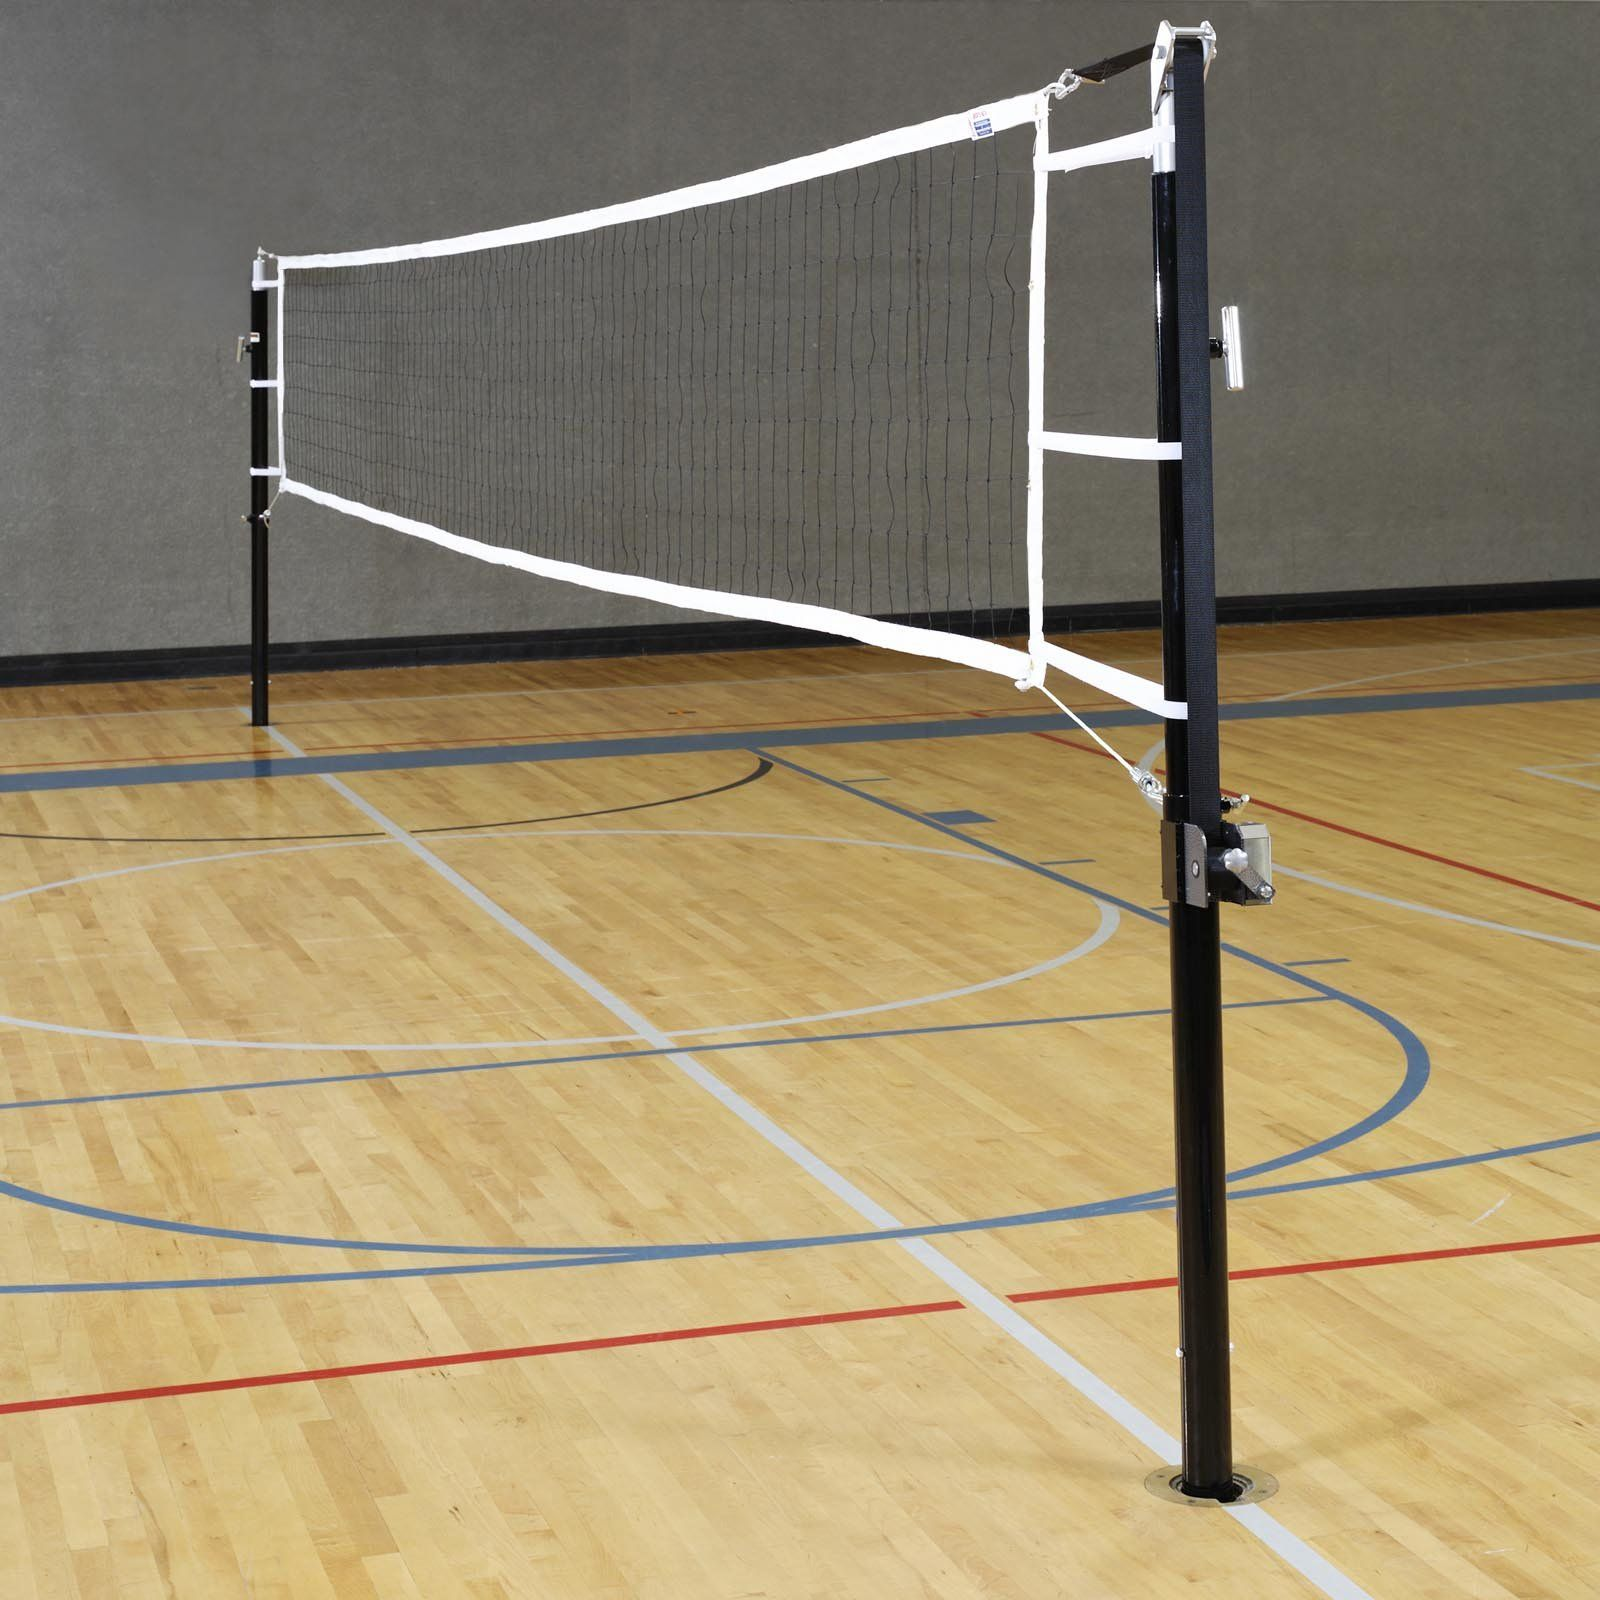 Indoor Volleyball Net Portable One So We Can Take It To The